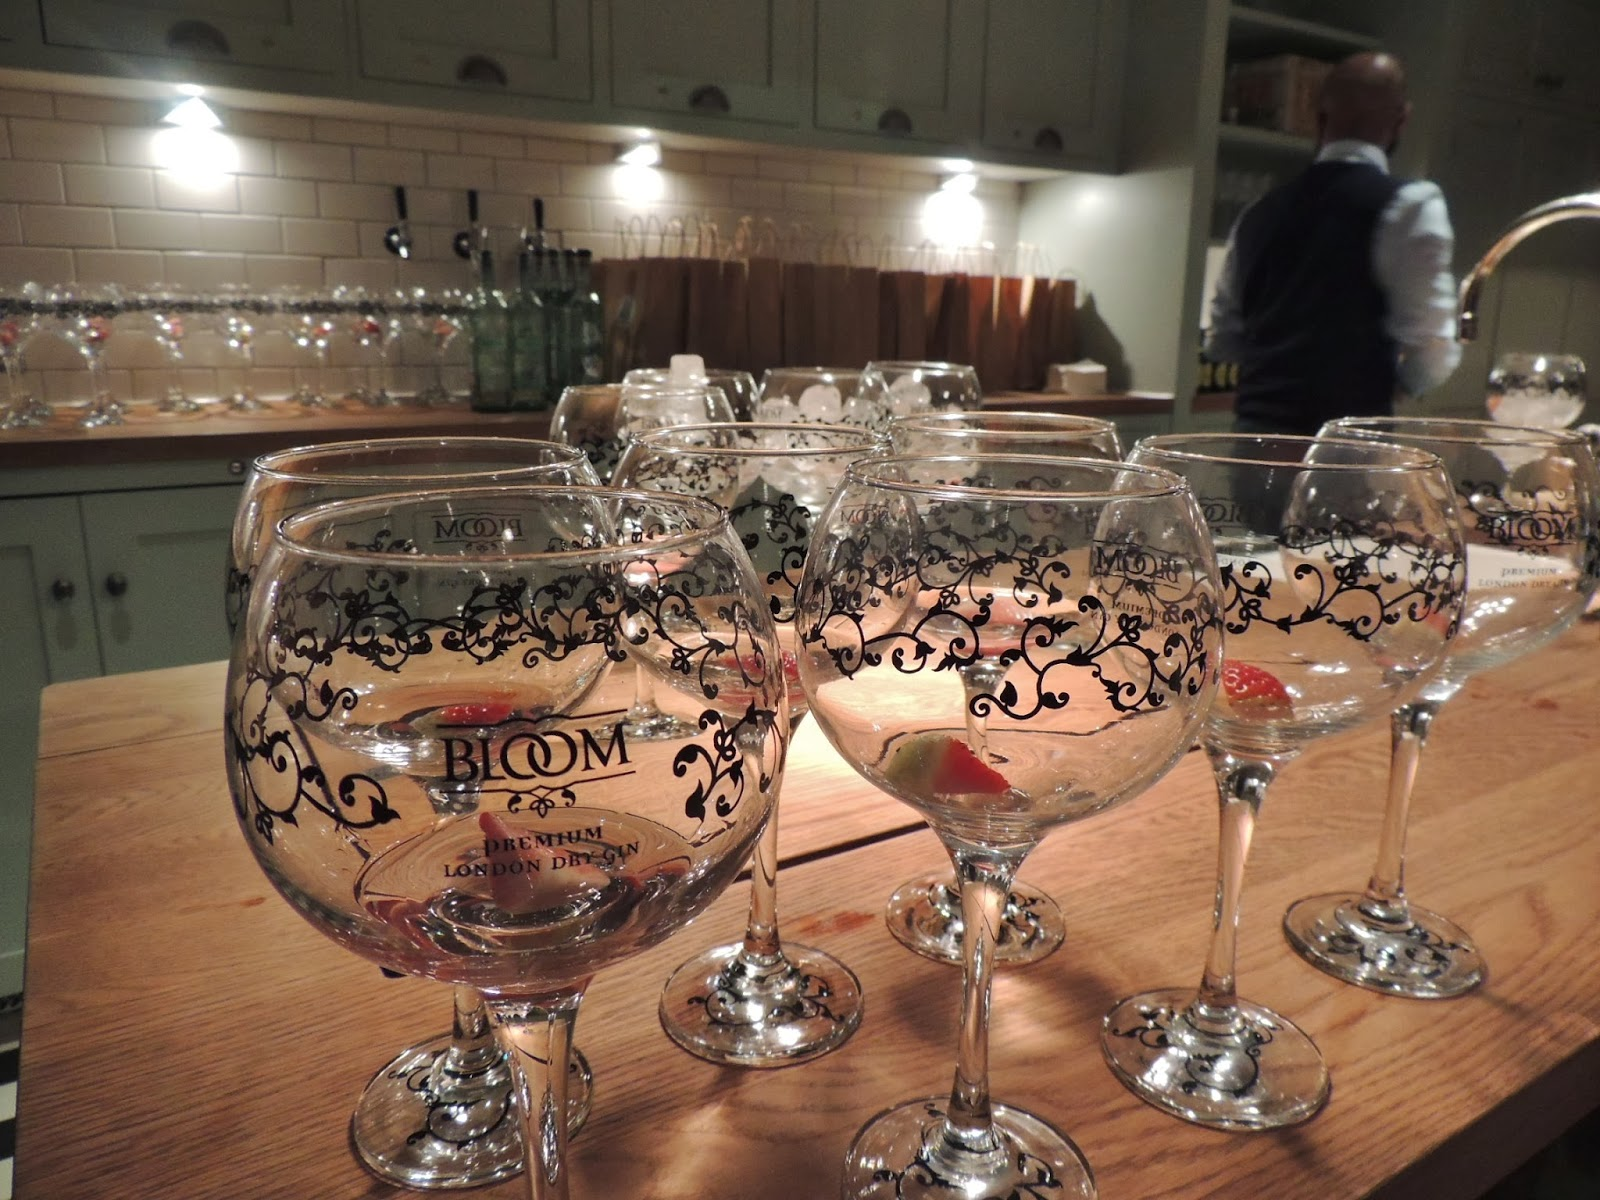 Bloom cocktail glasses at the Hoxton Hotel